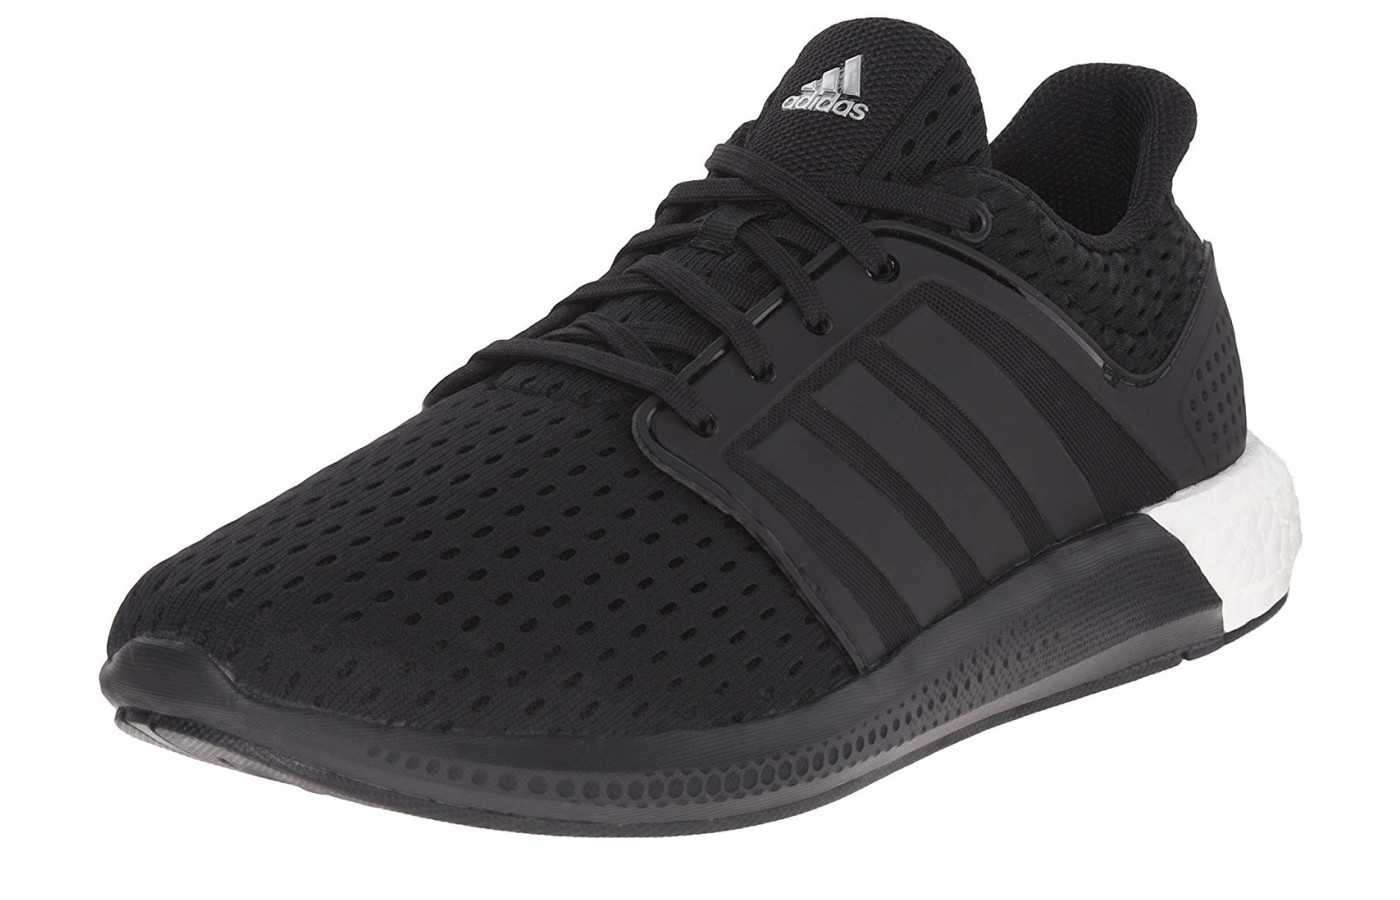 637c2843b2c Adidas Solar Boost  To Buy or Not in 2019